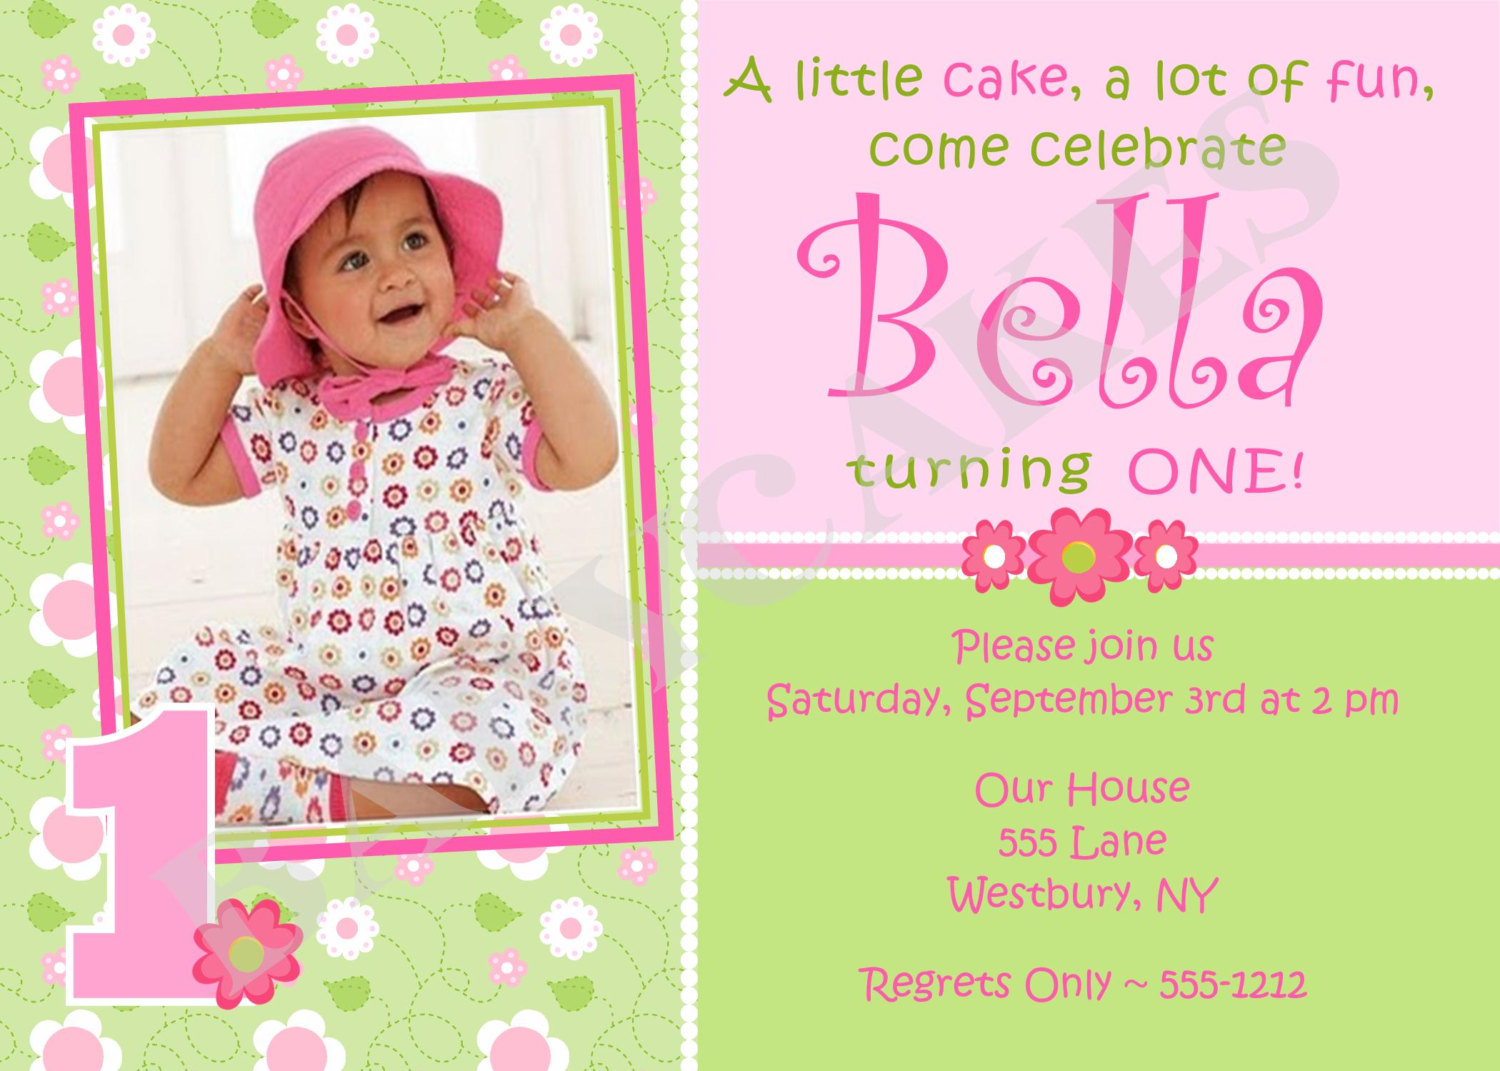 birthday invitation card with photo ; birthday-invitation-card-for-a-artistic-Birthday-invitation-design-with-artistic-layout-1